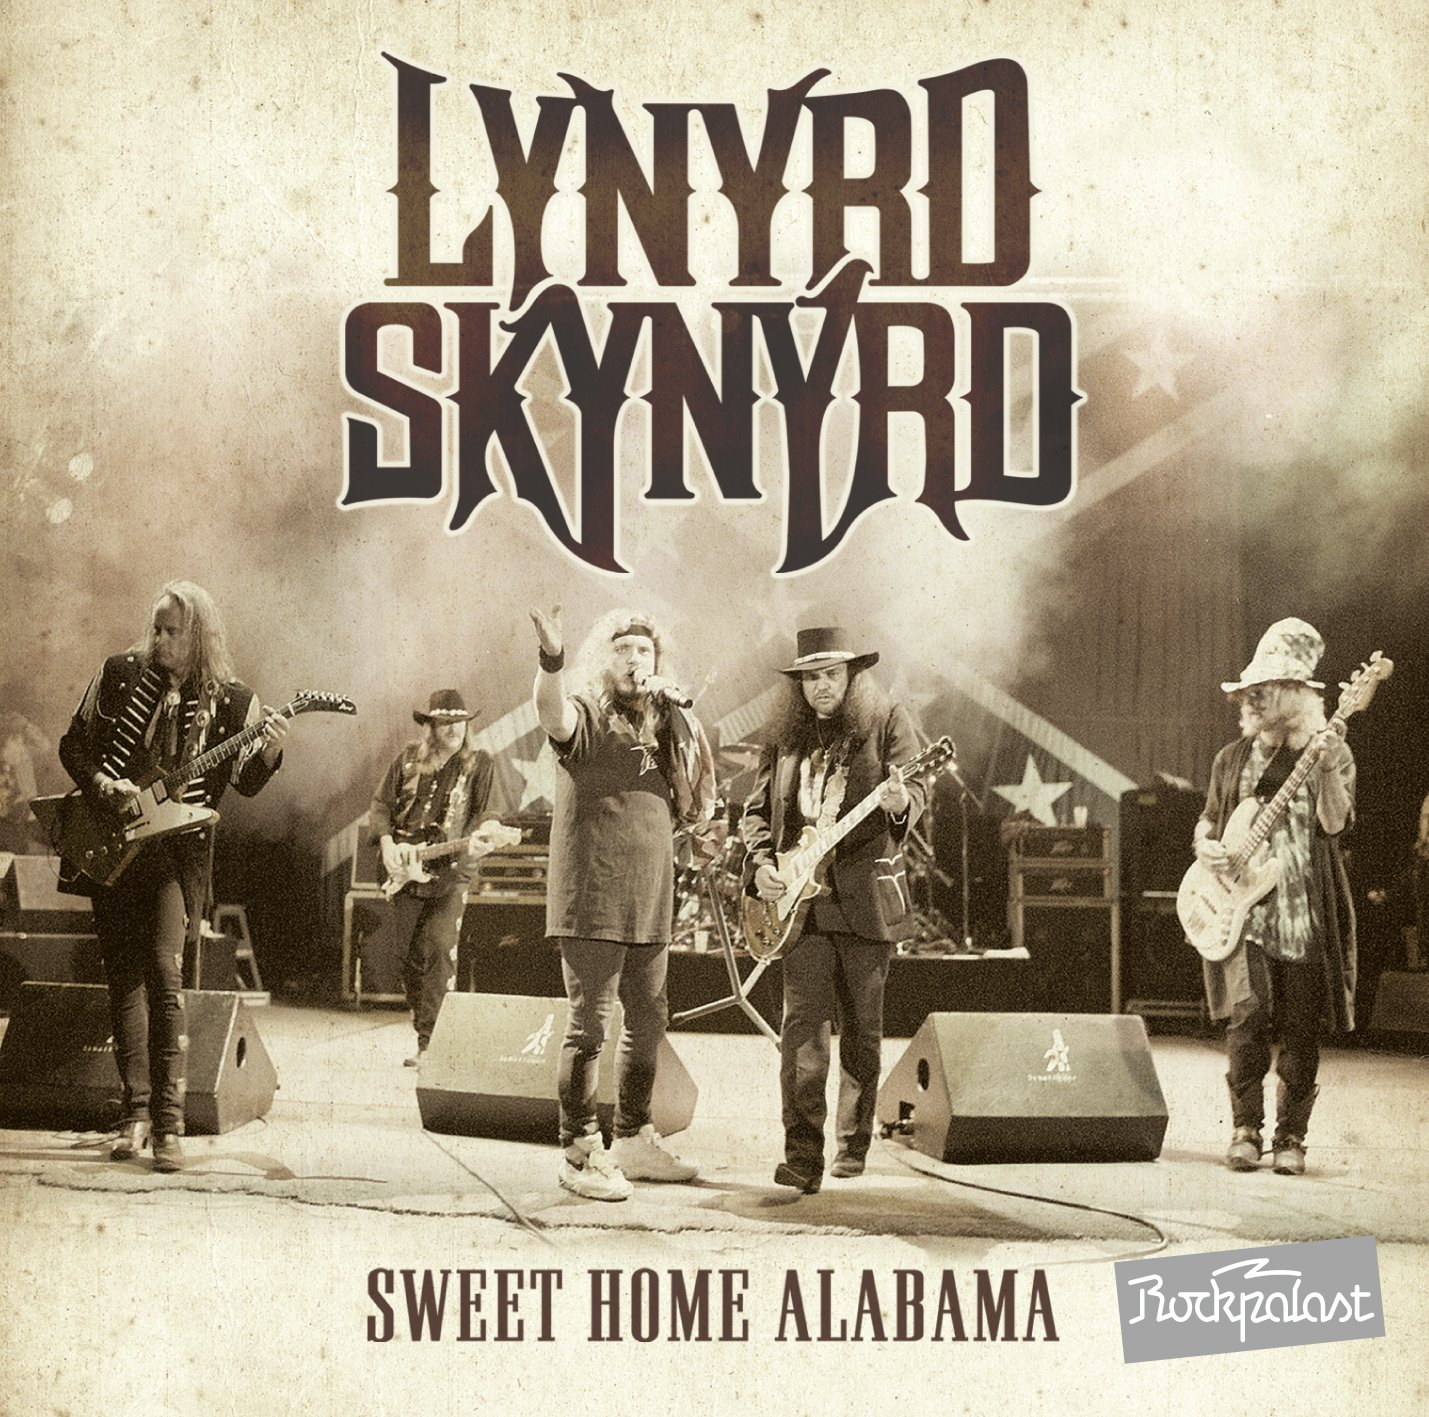 Sweet Home Alabama Live At Rockpalast [2 CD]